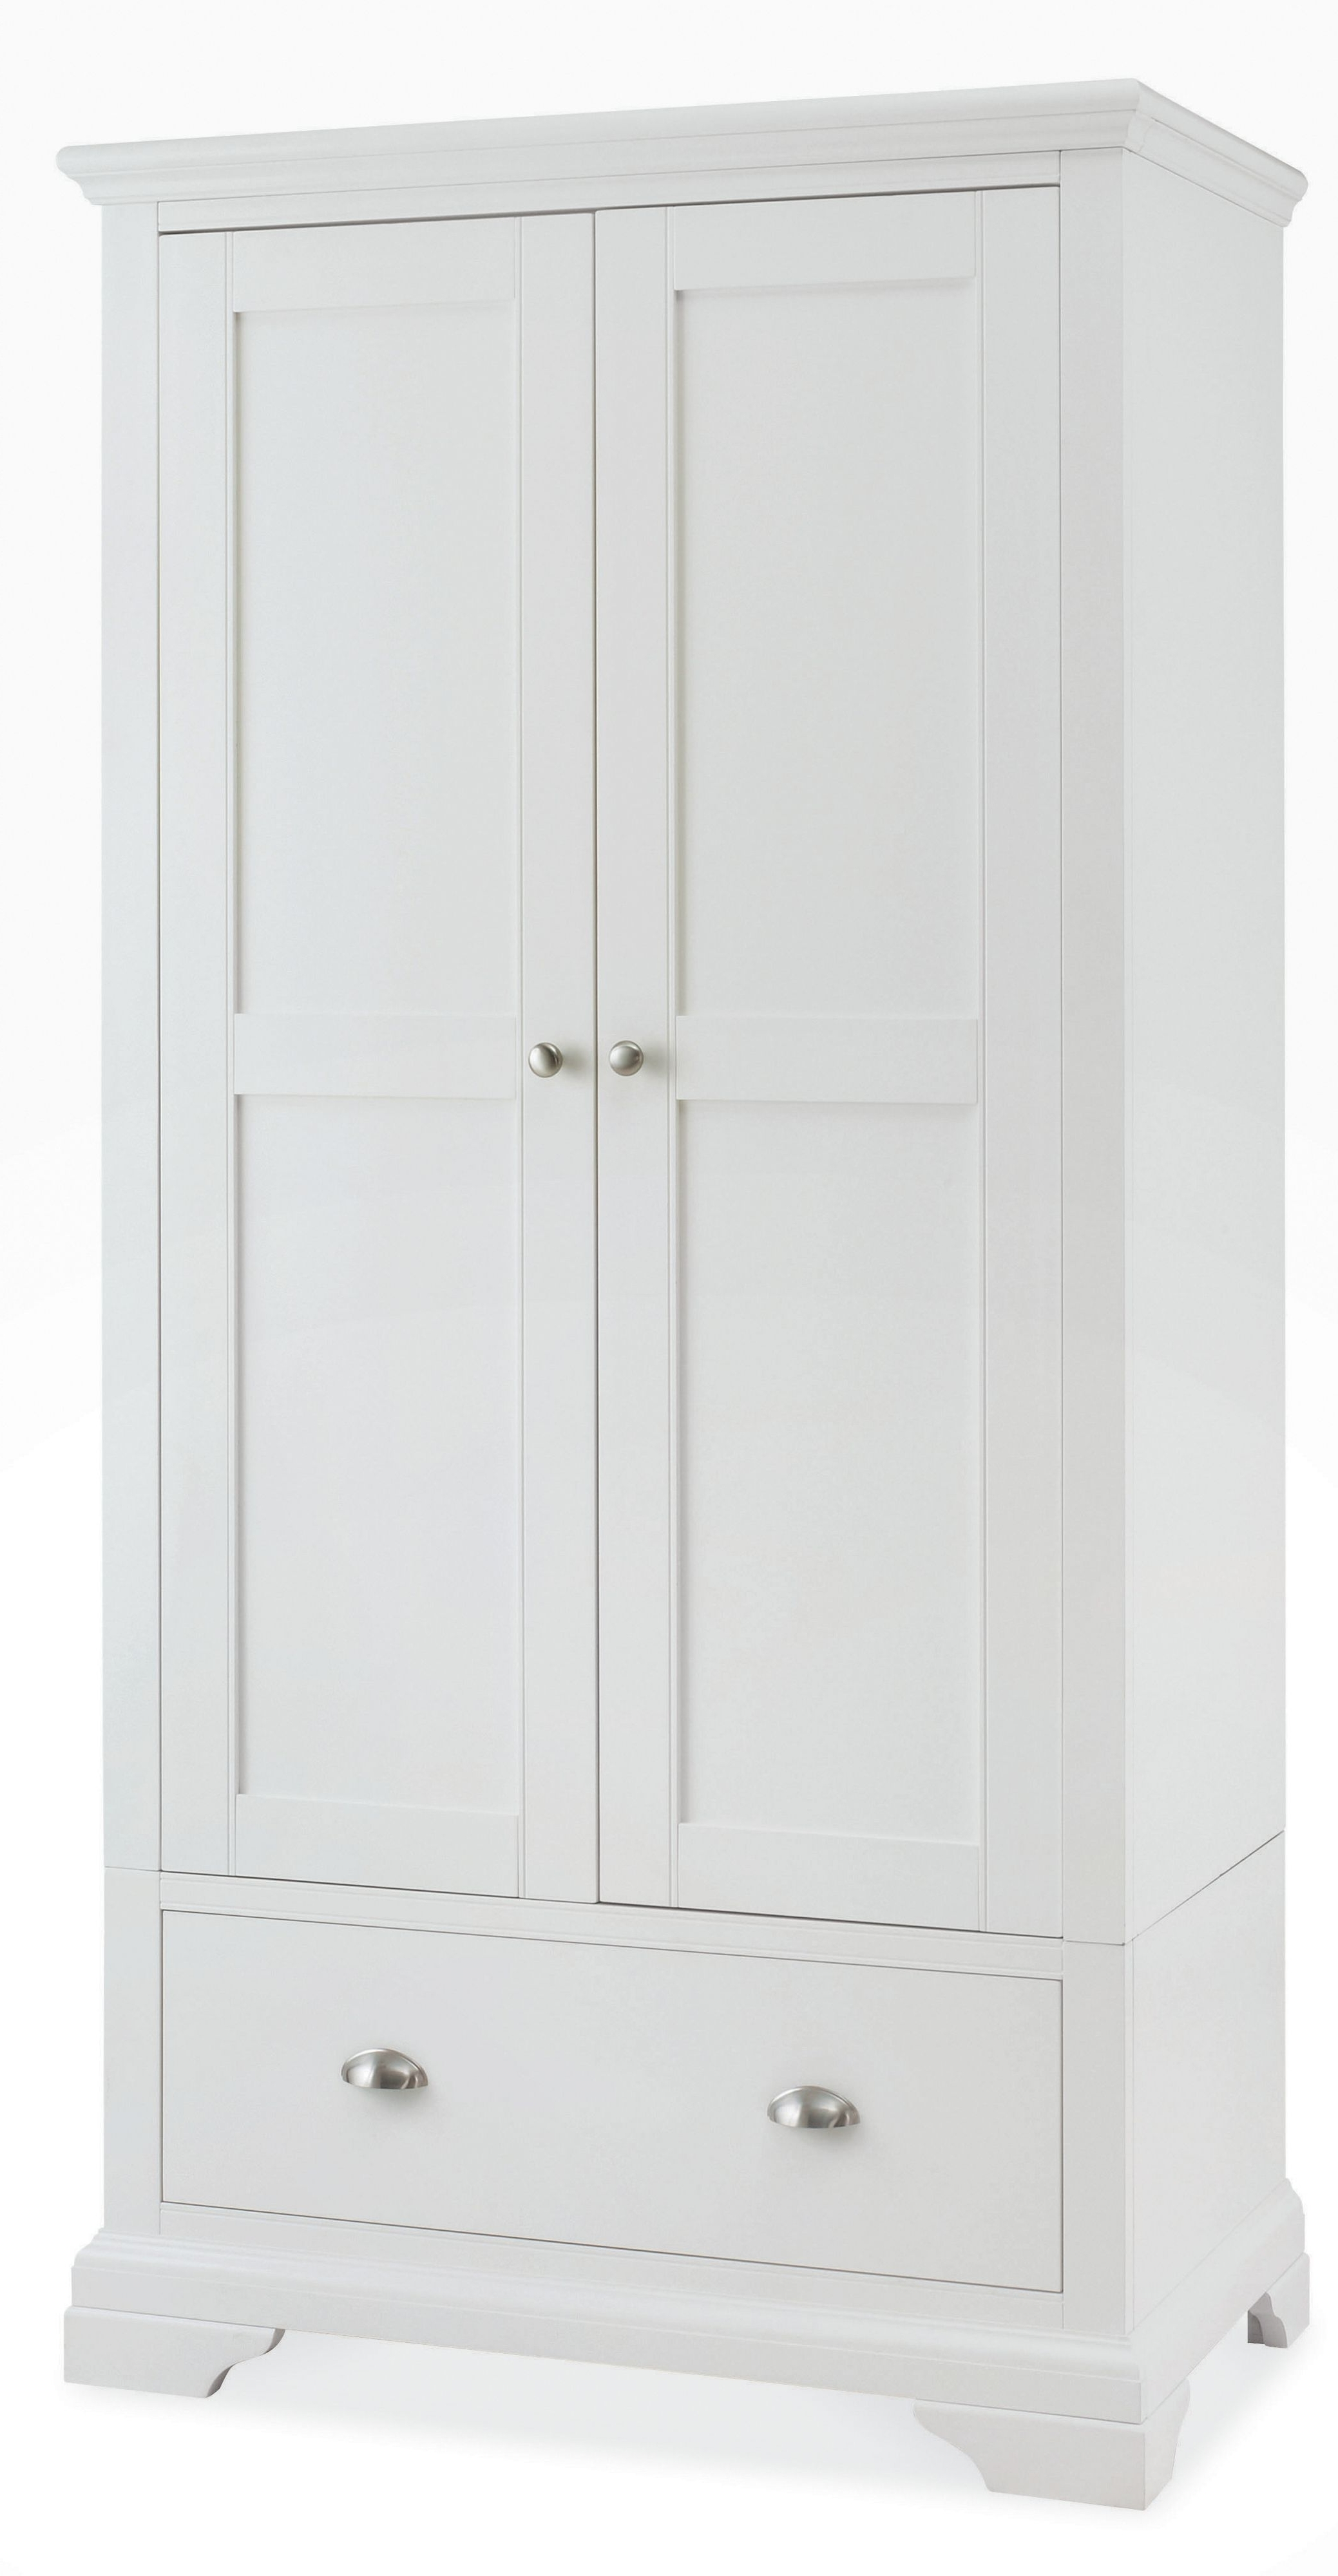 Popular Vintage White Wooden Wardrobe With Inside Shelves And Numerous Within White Wood Wardrobes (View 6 of 15)